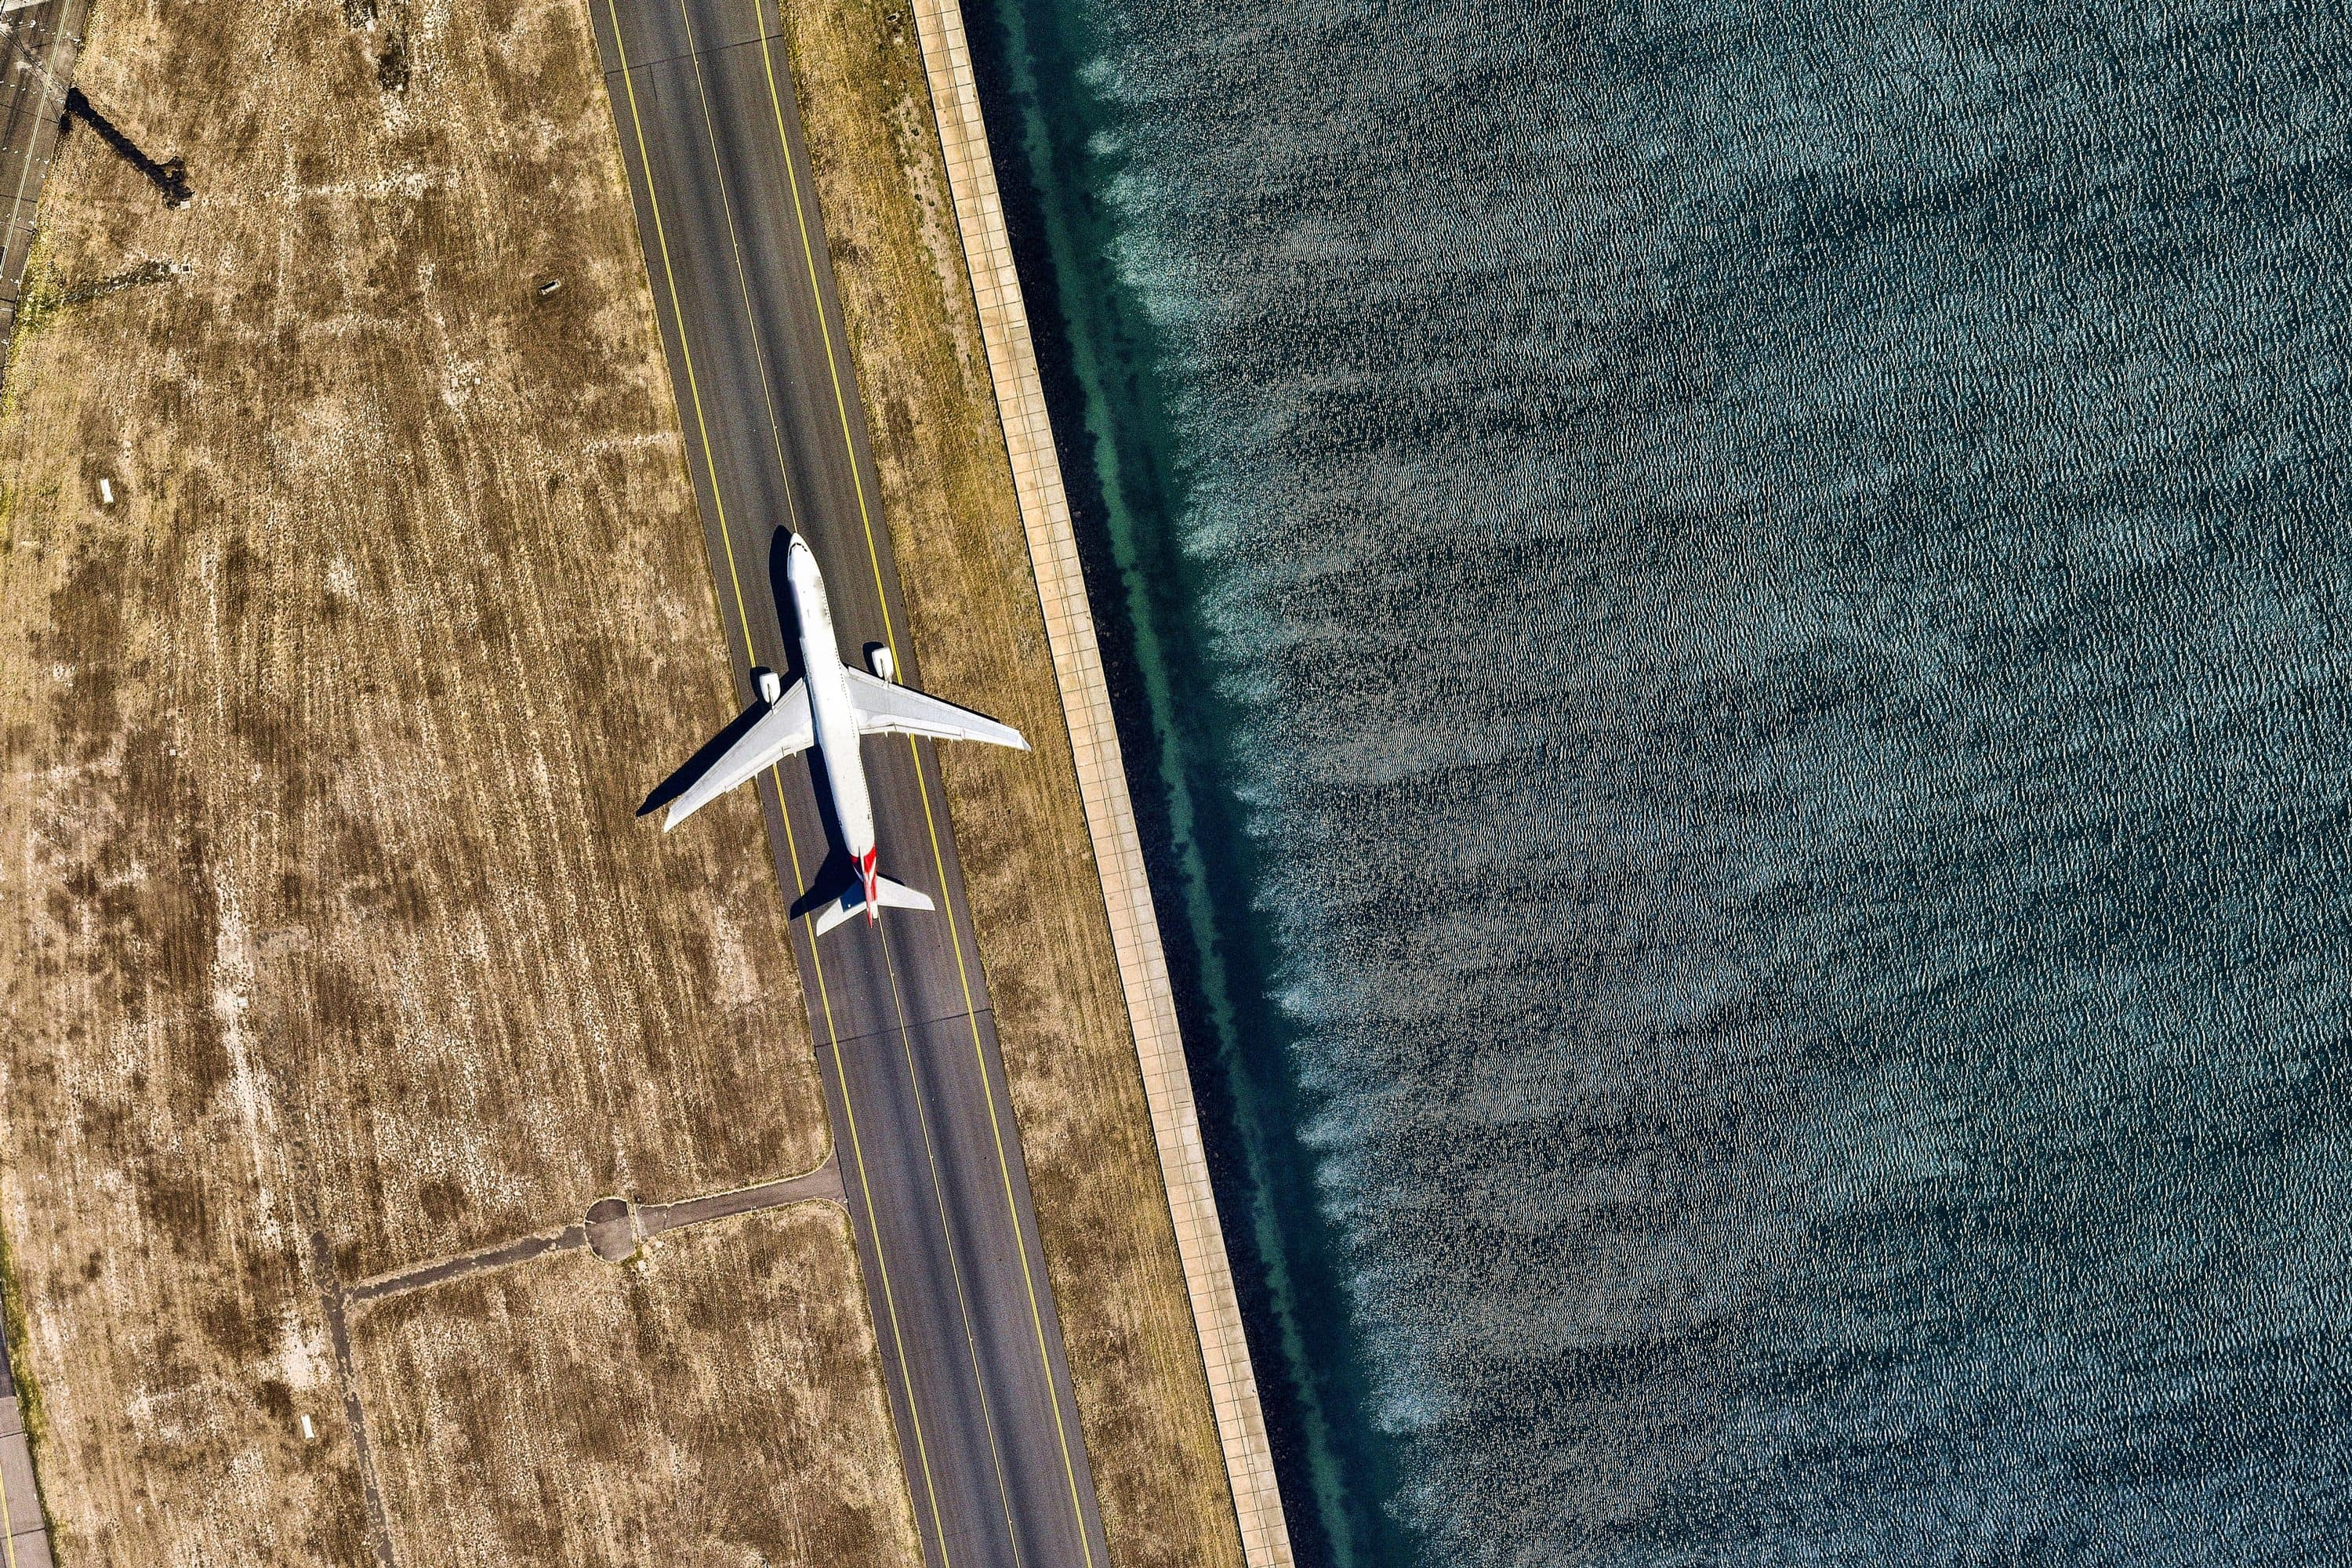 Bird's-eye view of a plane moving along a runway next to the ocean